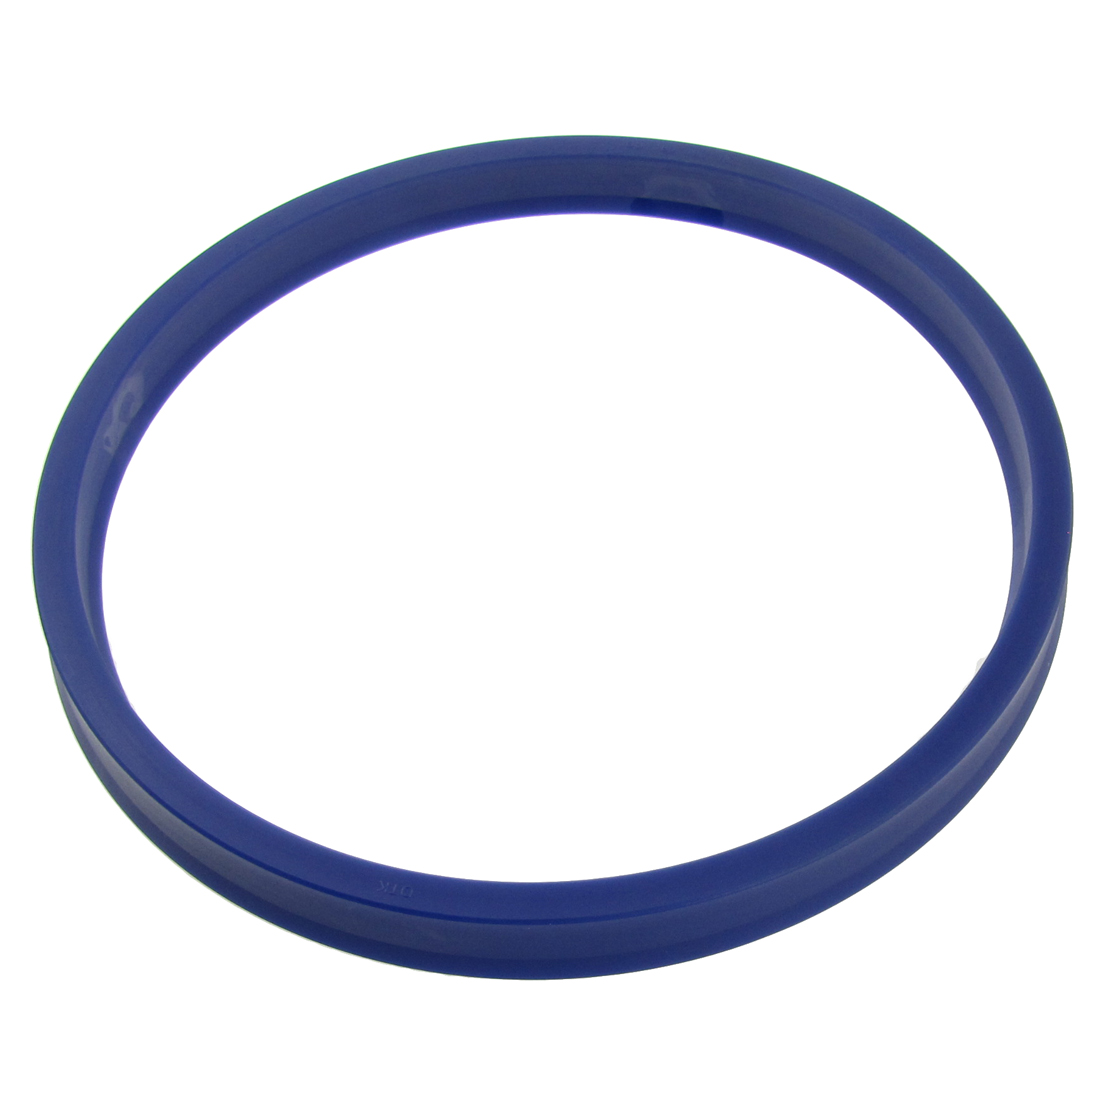 IDU 196mm x 180mm x 18mm Hydraulic Rod Shaft PU Oil Seal